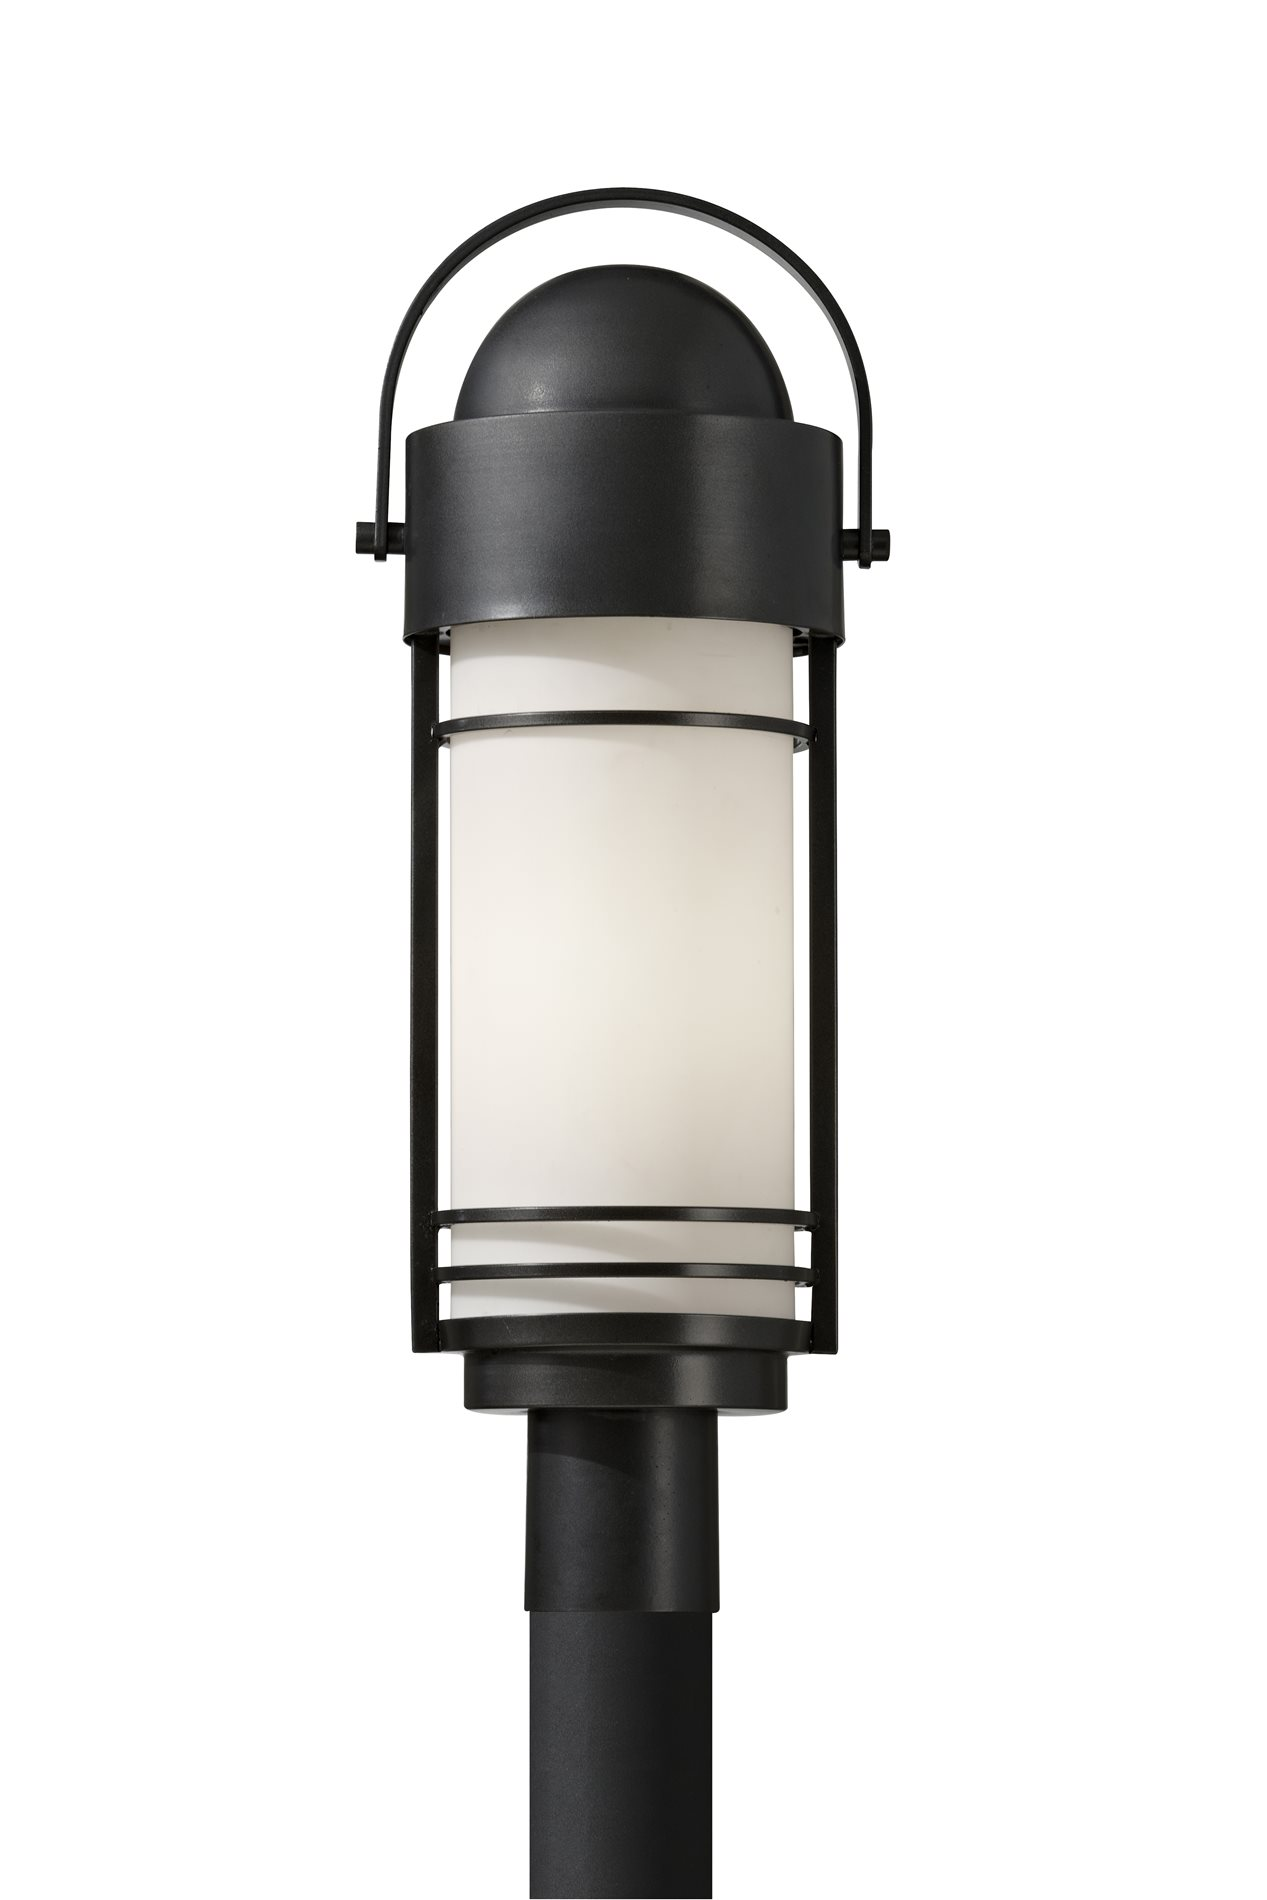 Murray feiss ol8308drc carbondale modern contemporary for Contemporary outdoor post light fixtures